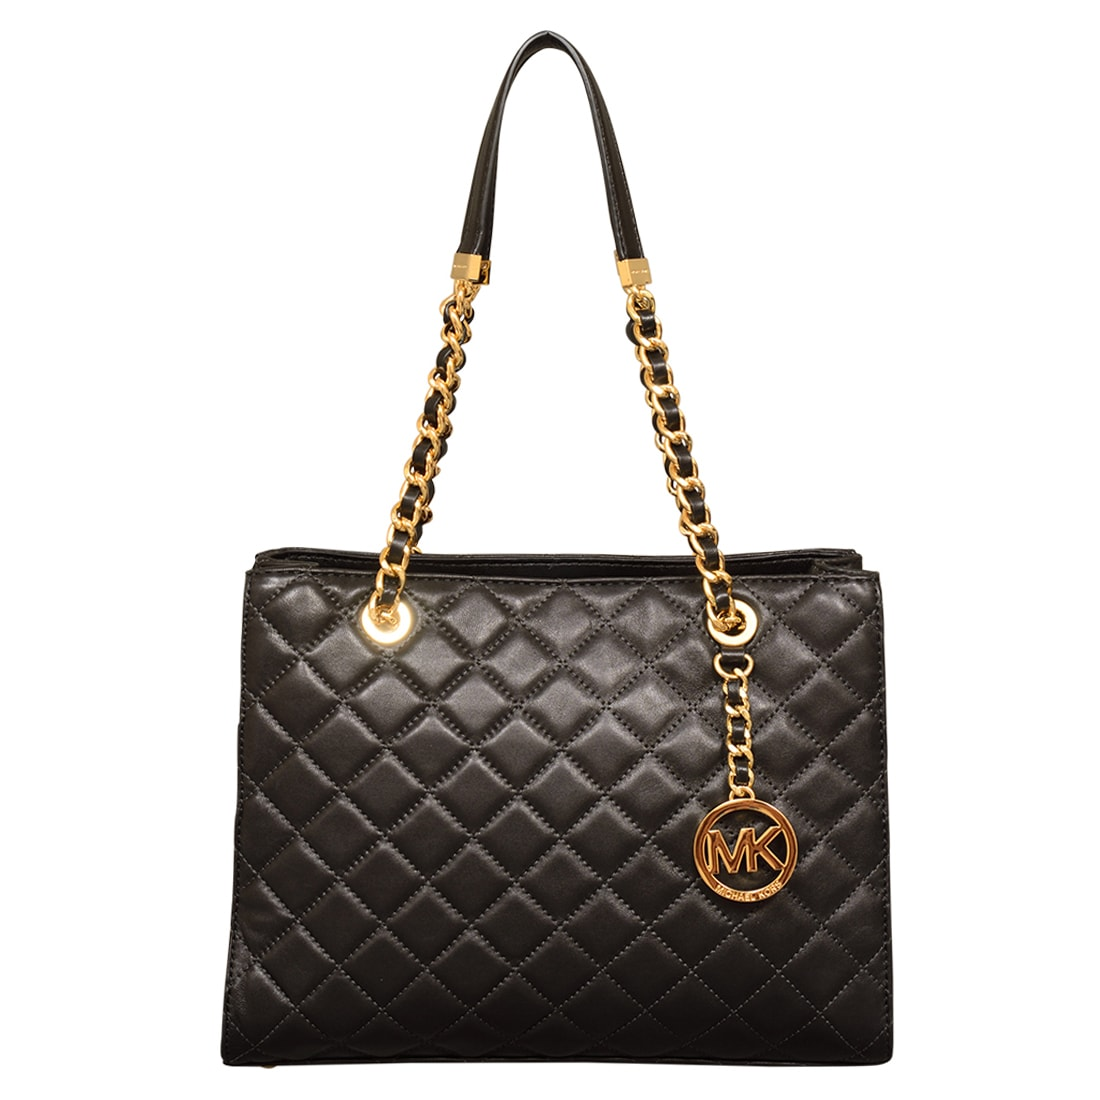 75b878186a74 Shop Michael Kors Susannah Medium Black Quilted Leather Tote Bag - Free  Shipping Today - Overstock - 13415915